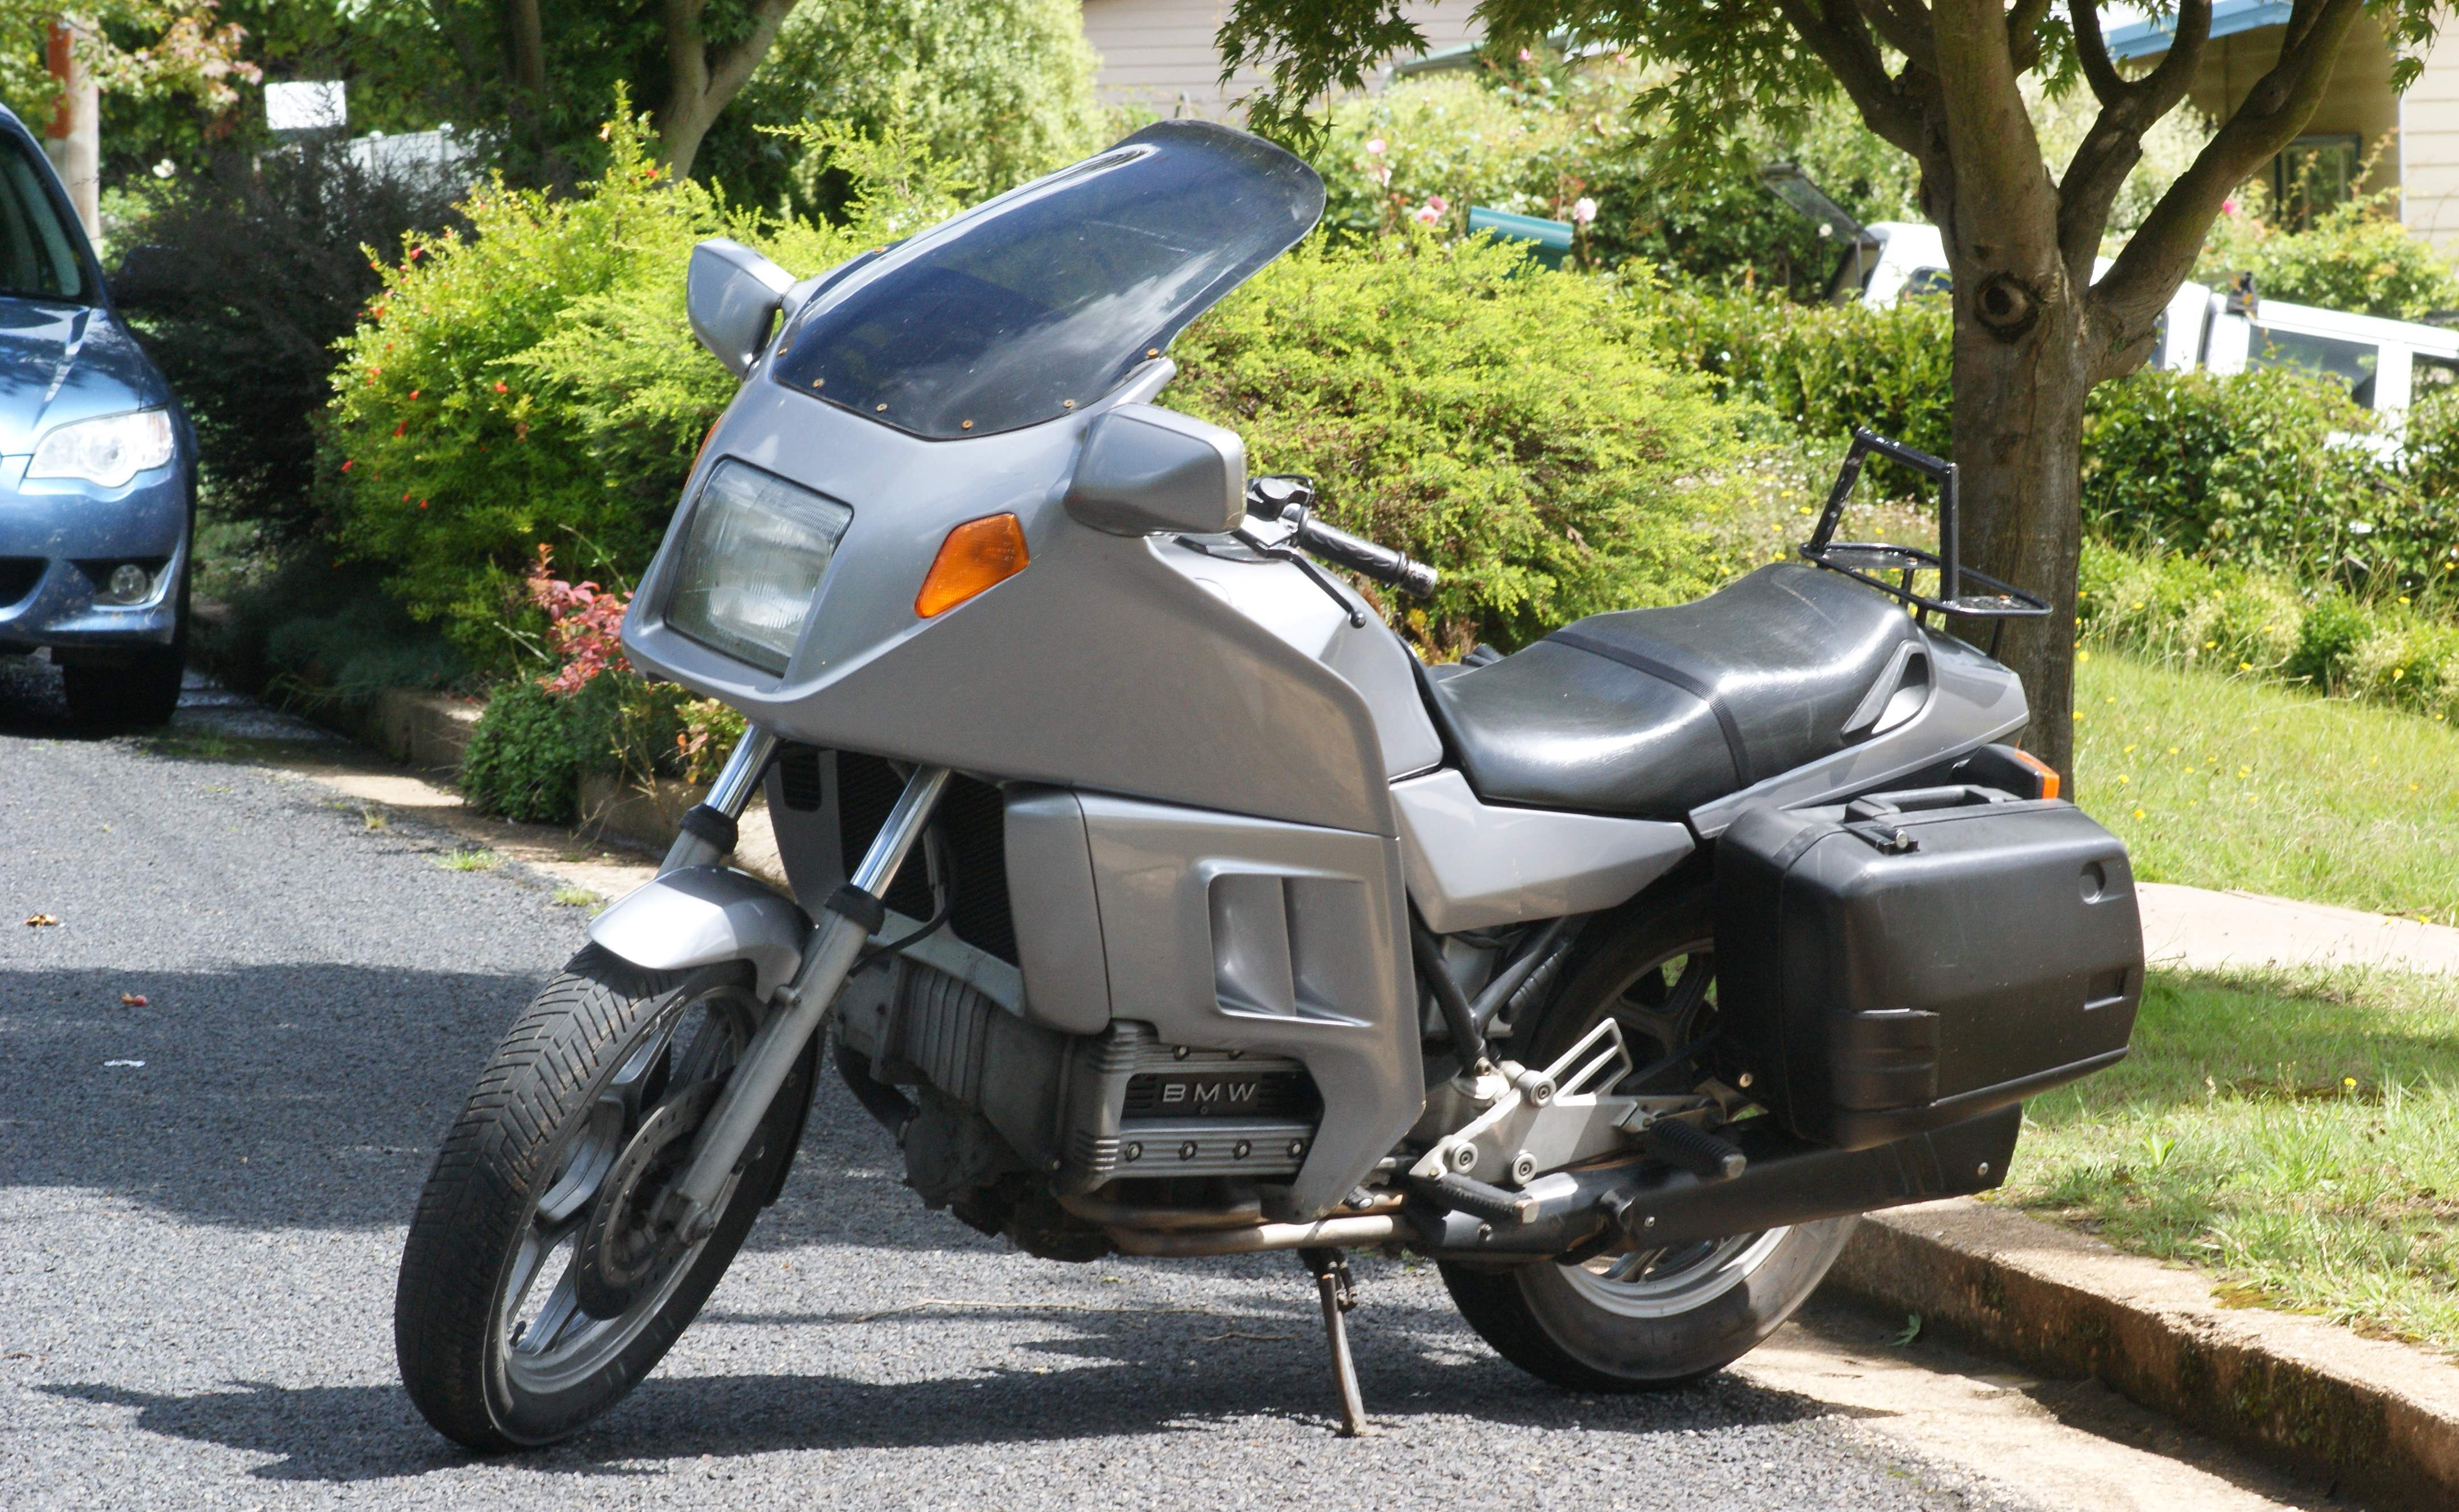 BMW K100RT 1984 images #143874